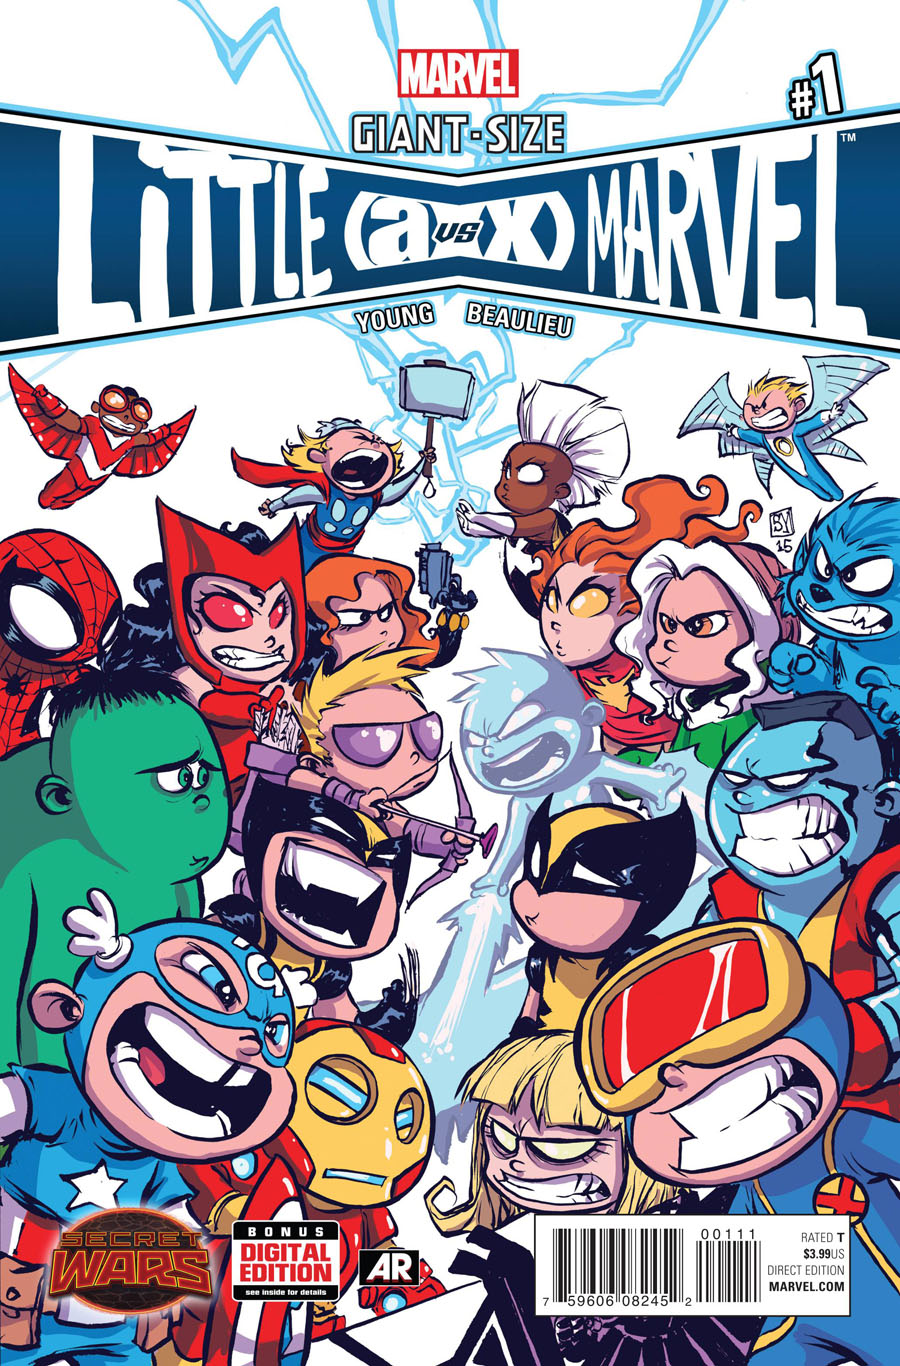 Giant-Size Little Marvel AvX #1 Cover A Regular Skottie Young Cover (Secret Wars Warzones Tie-In)